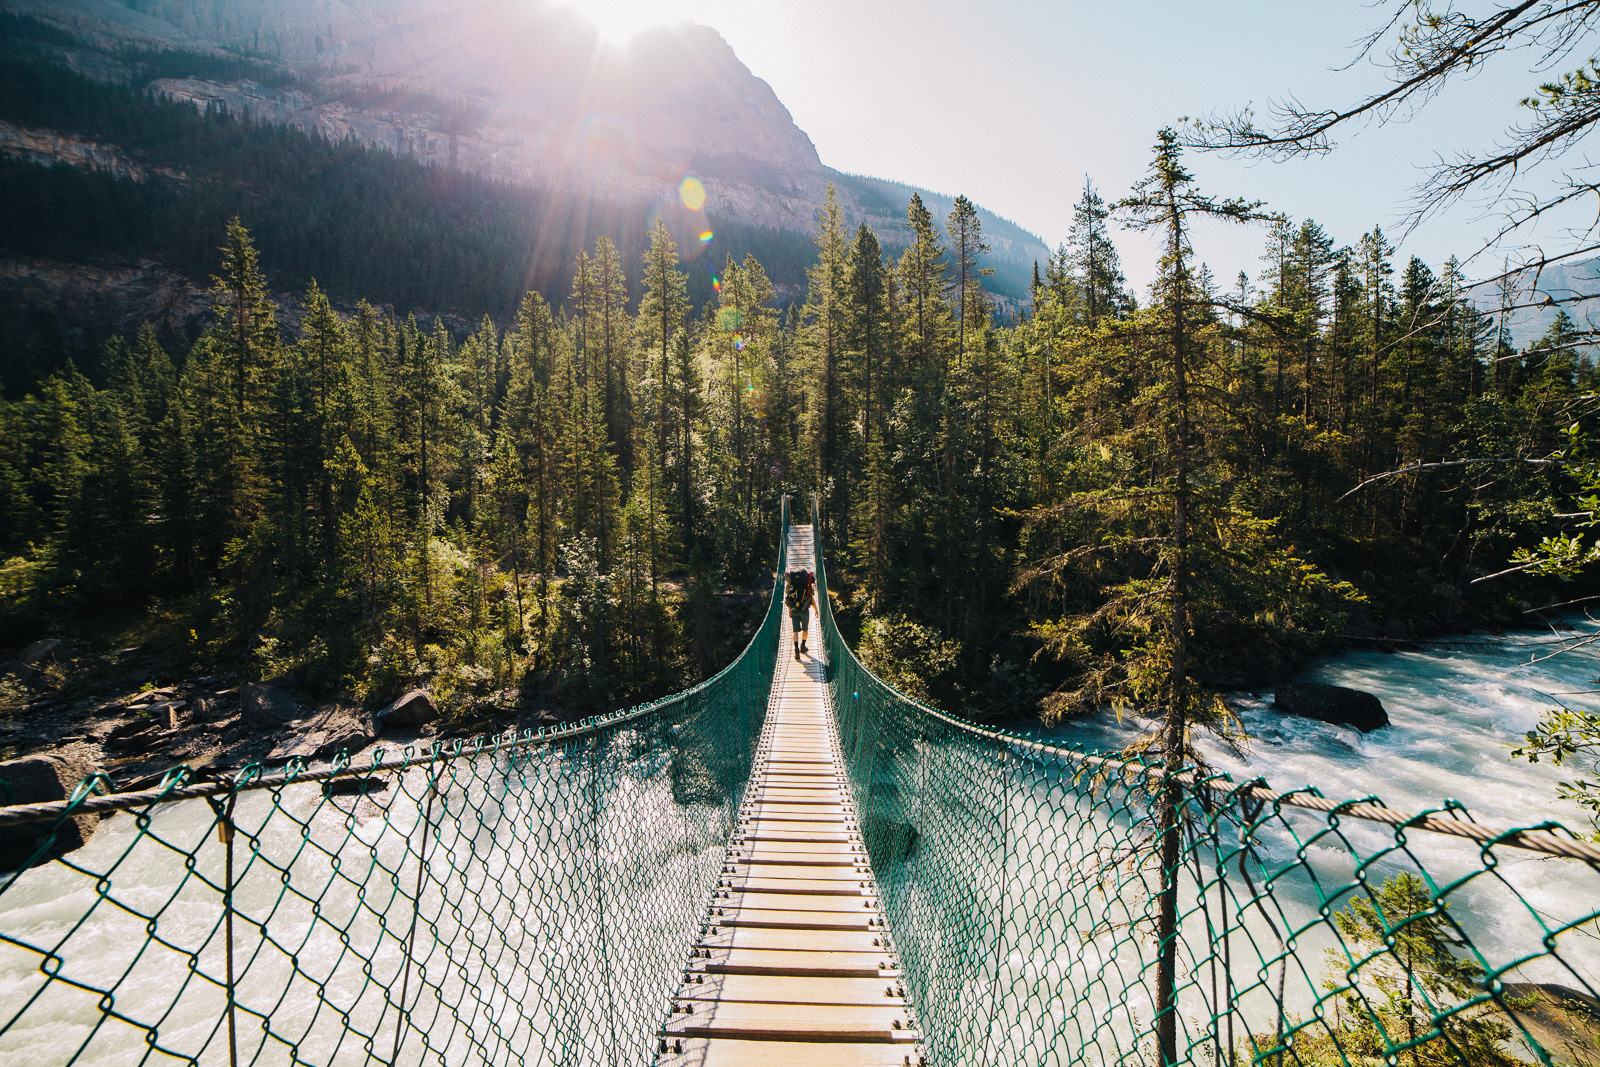 berg lake trail suspension bridge crossing river